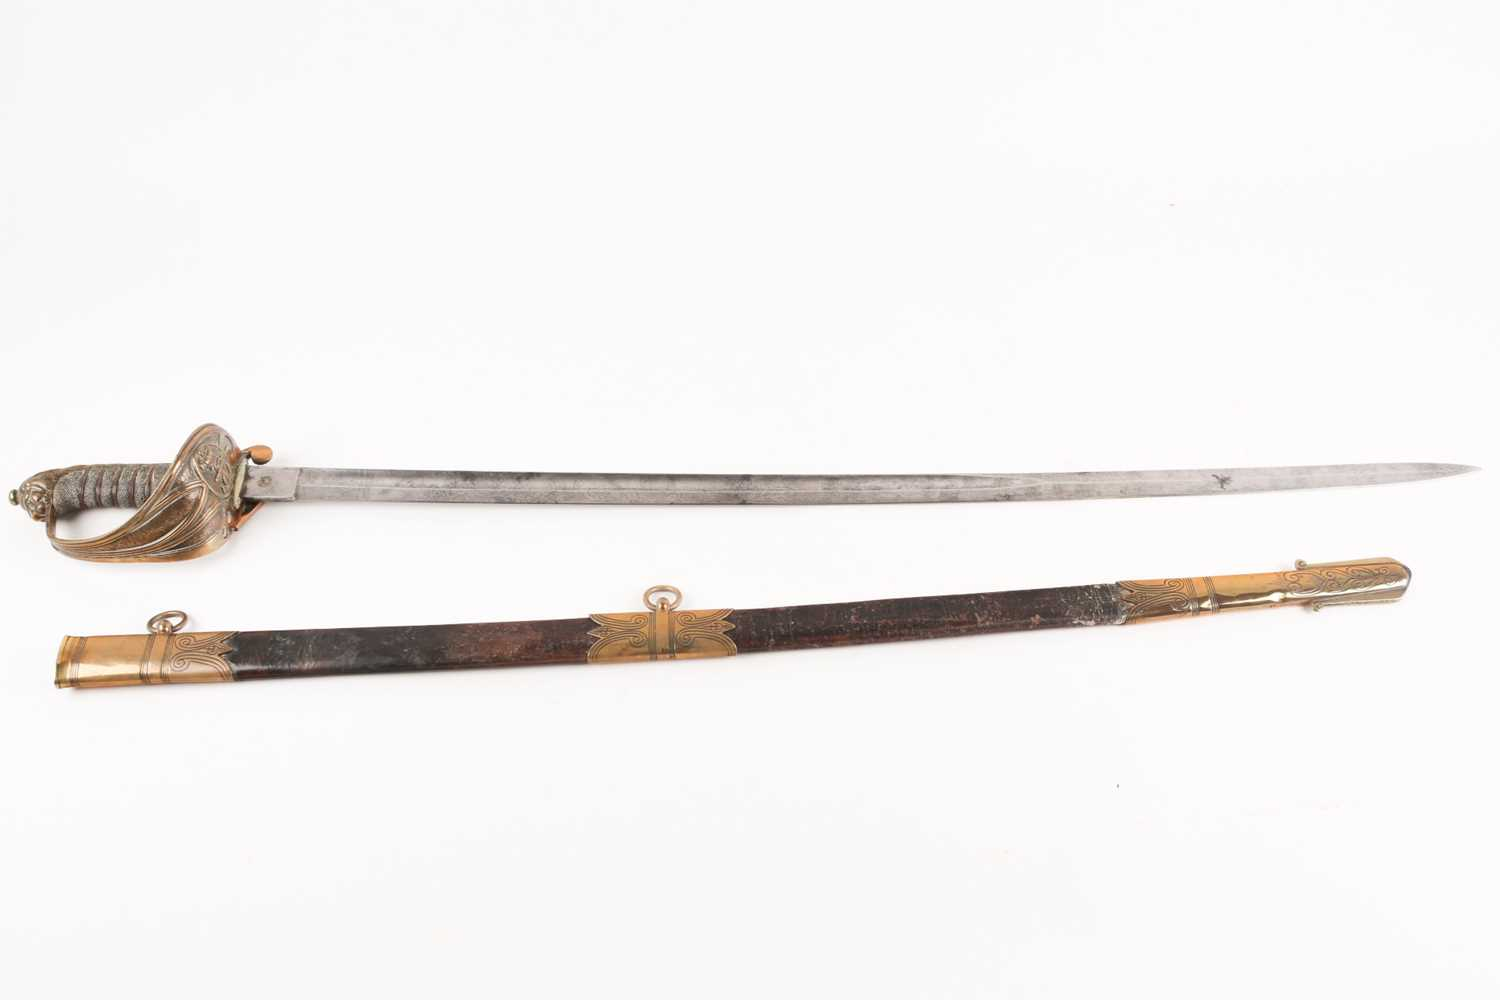 A late 19th century 1827 pattern Naval officers dress sword and scabbard. With lions mask pommel and - Image 5 of 5